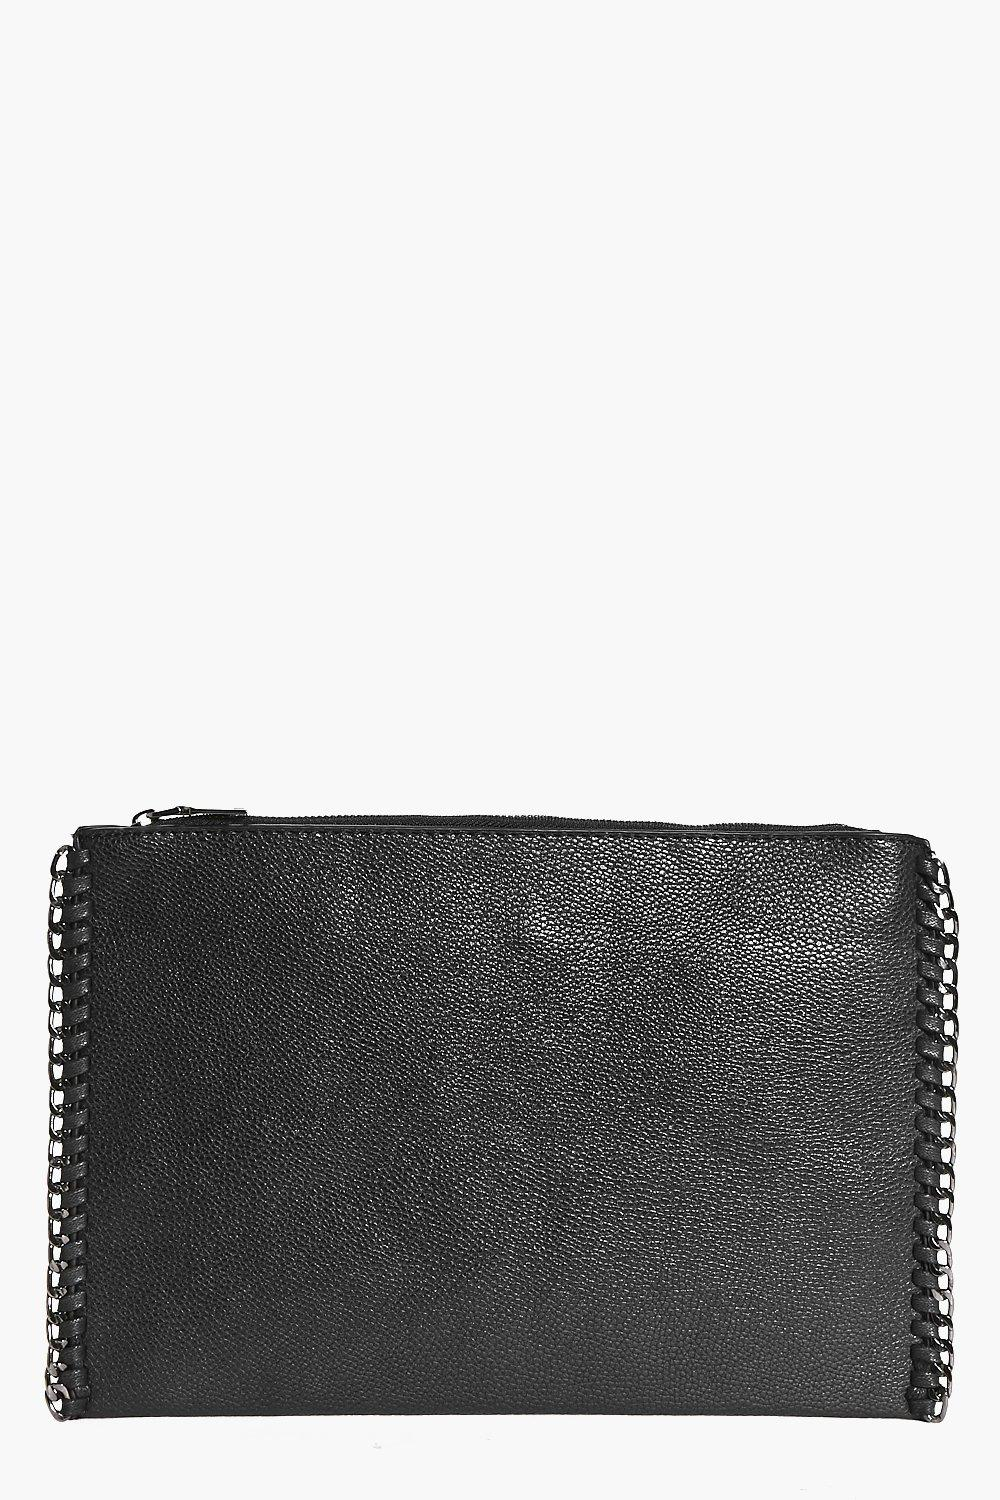 Lydia Chain Edge Clutch Bag